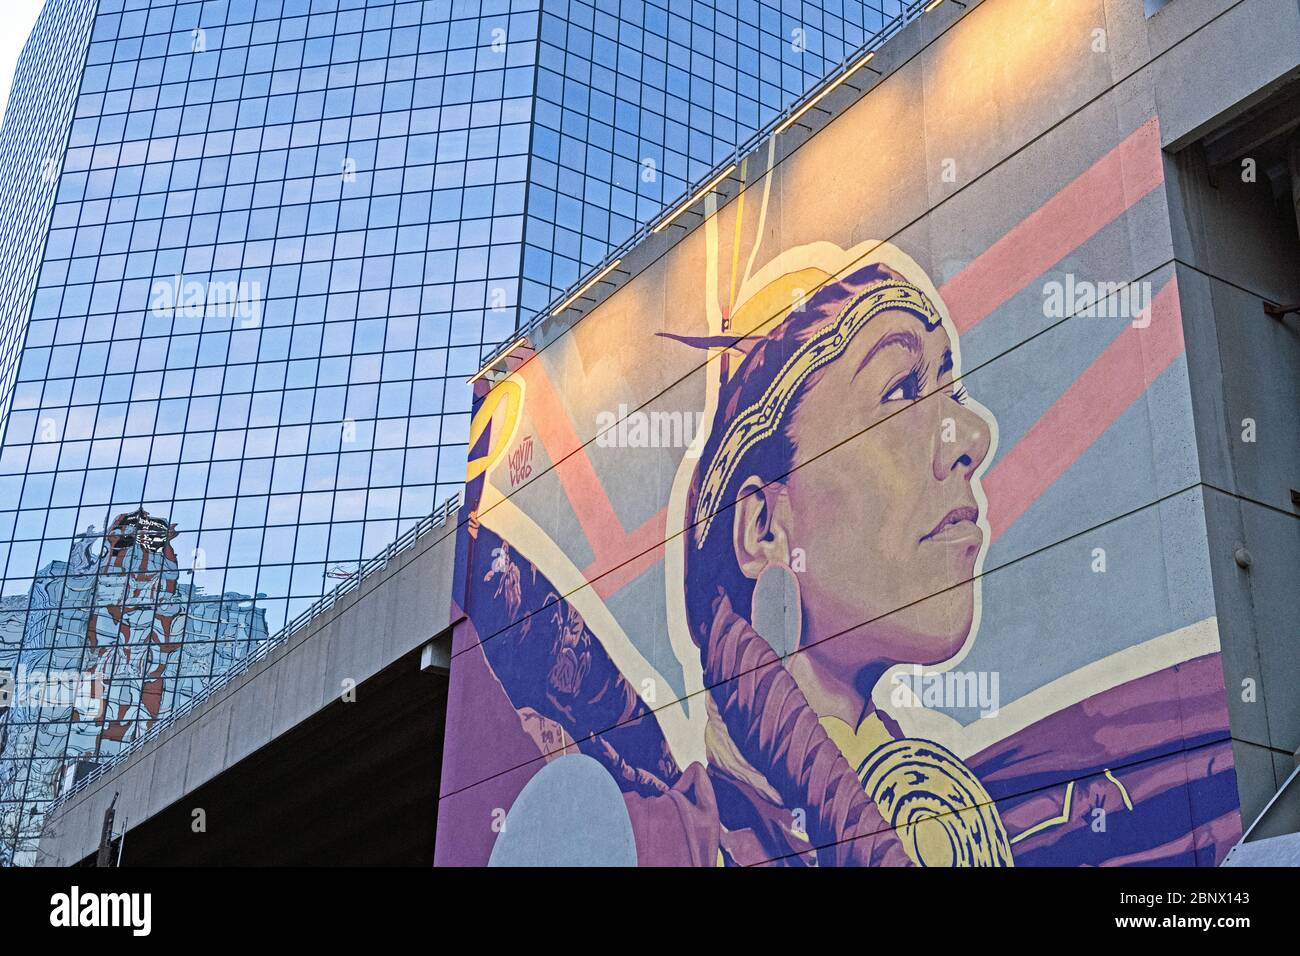 street-art-on-a-building-depicting-a-young-indigenous-cree-woman-in-downtown-calgary-alberta-canada-2BNX143.jpg